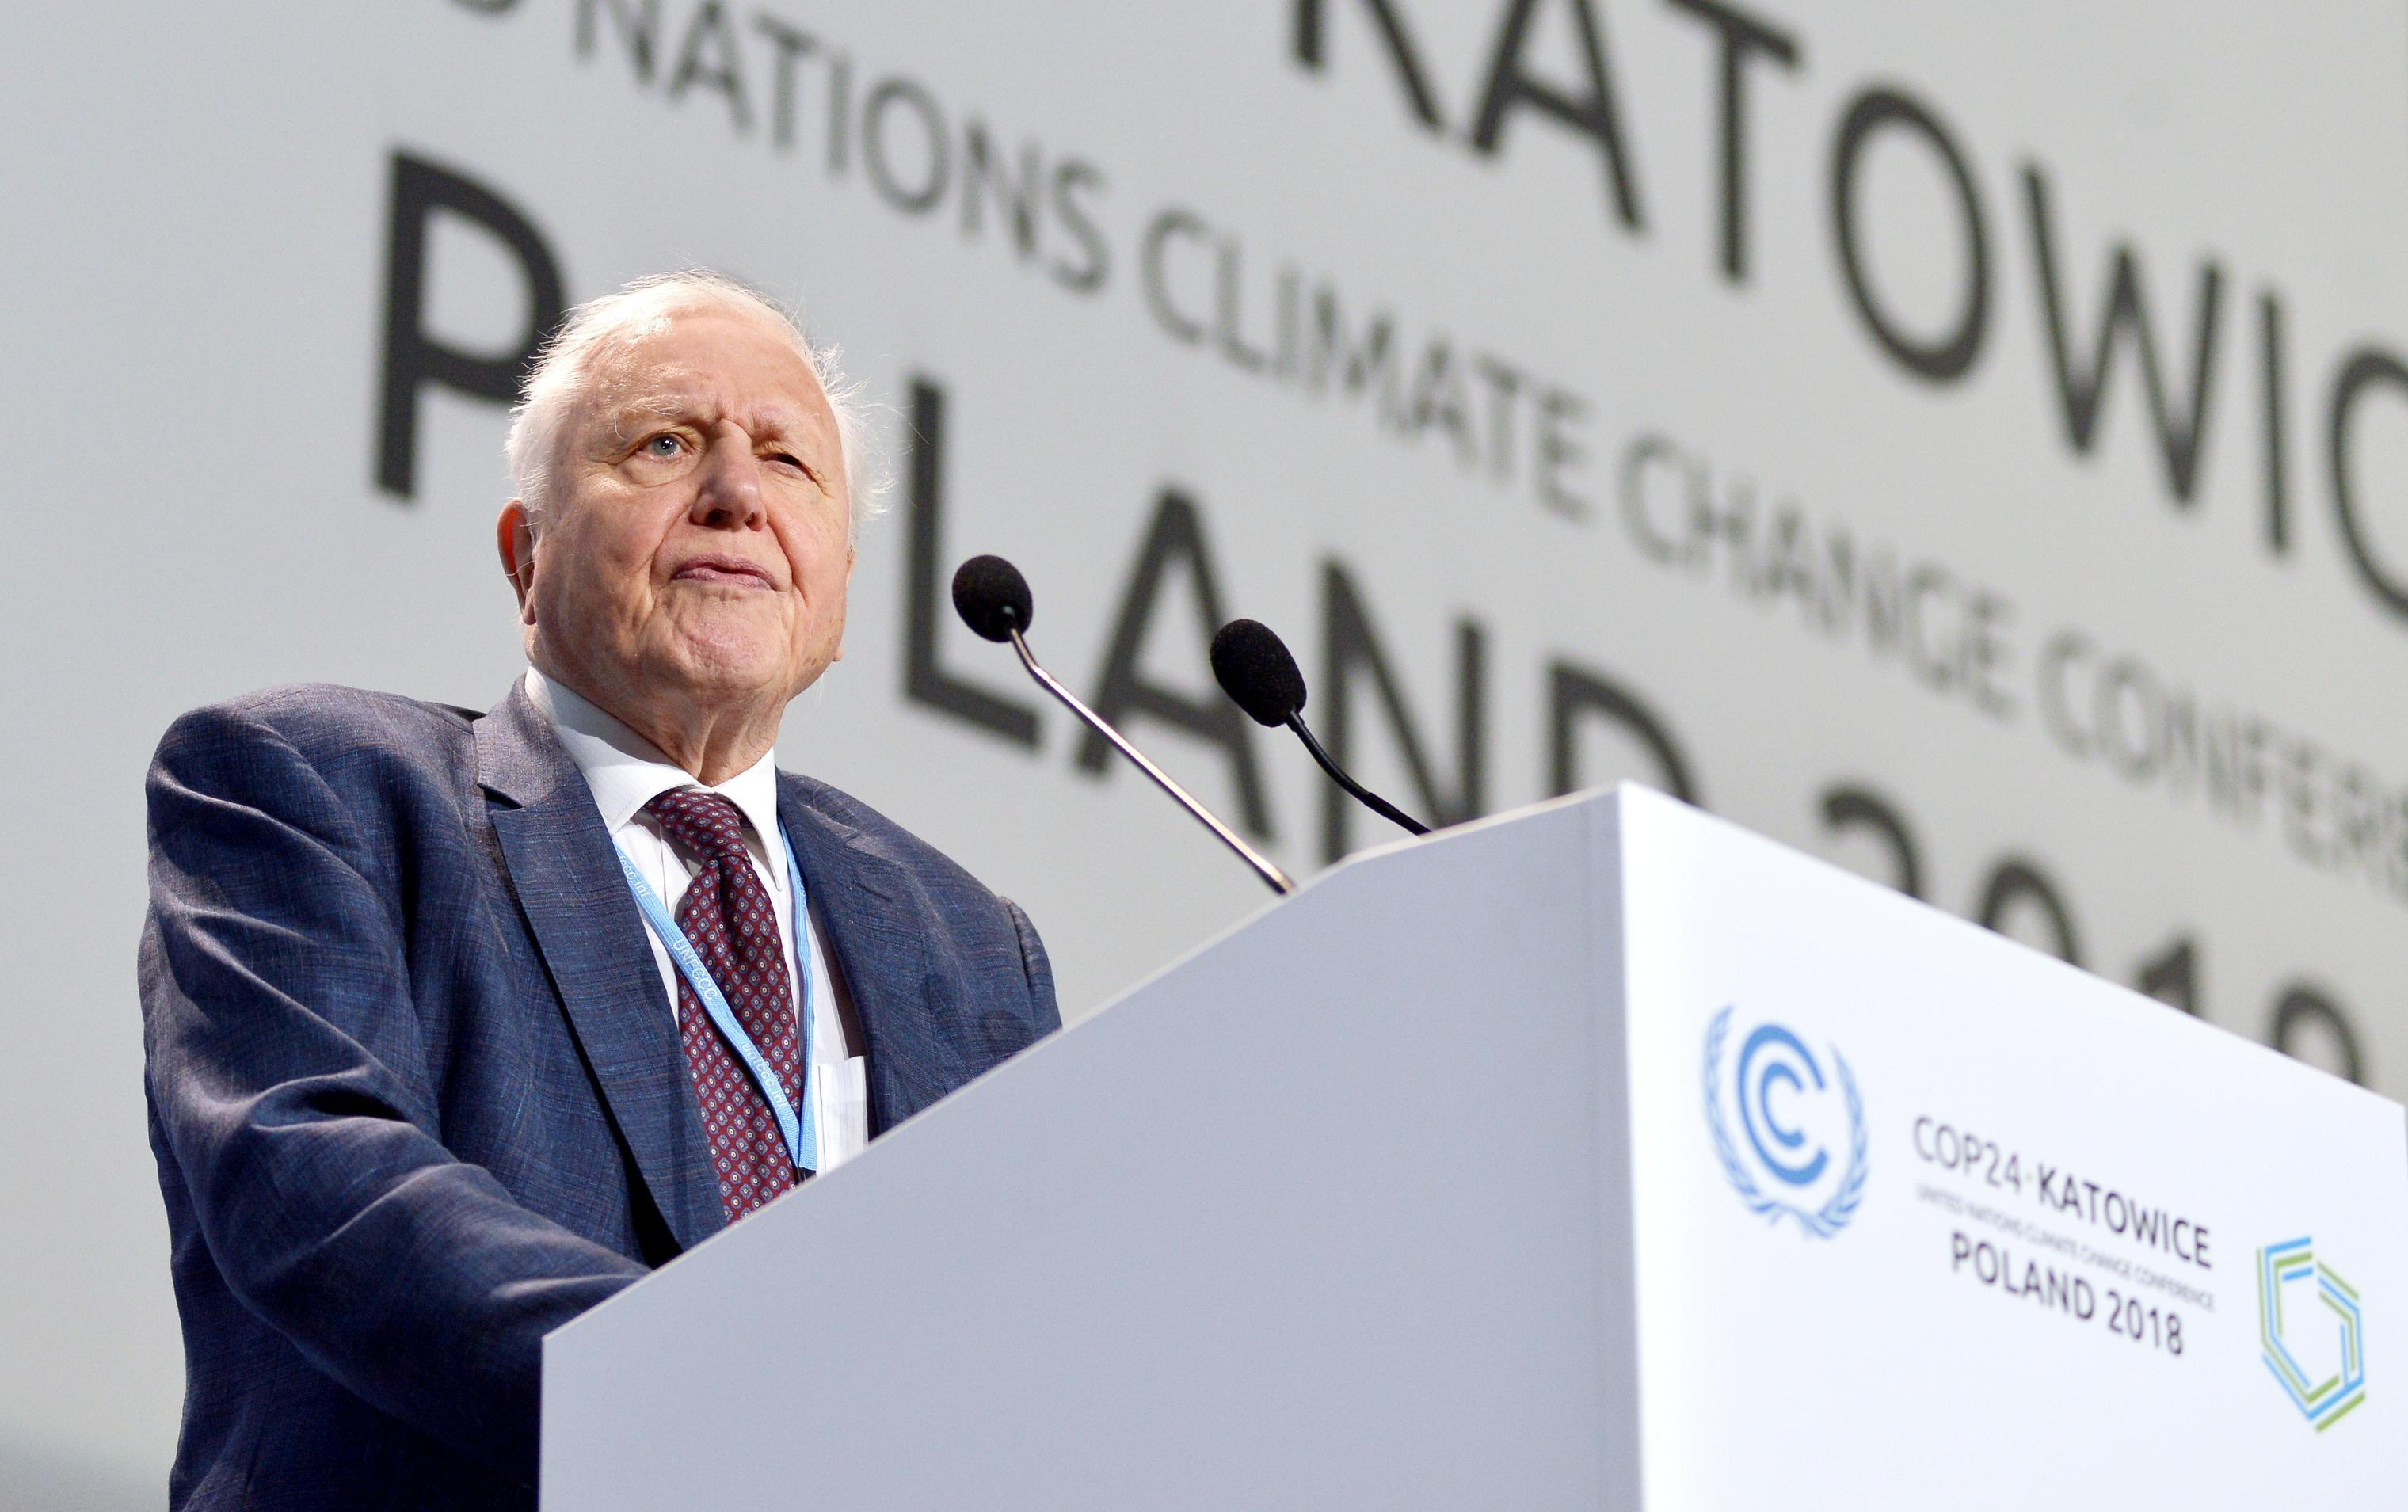 Sir David Attenborough says climate change is 'greatest threat' facing Earth and will 'destroy civilisation' if it is not tackled